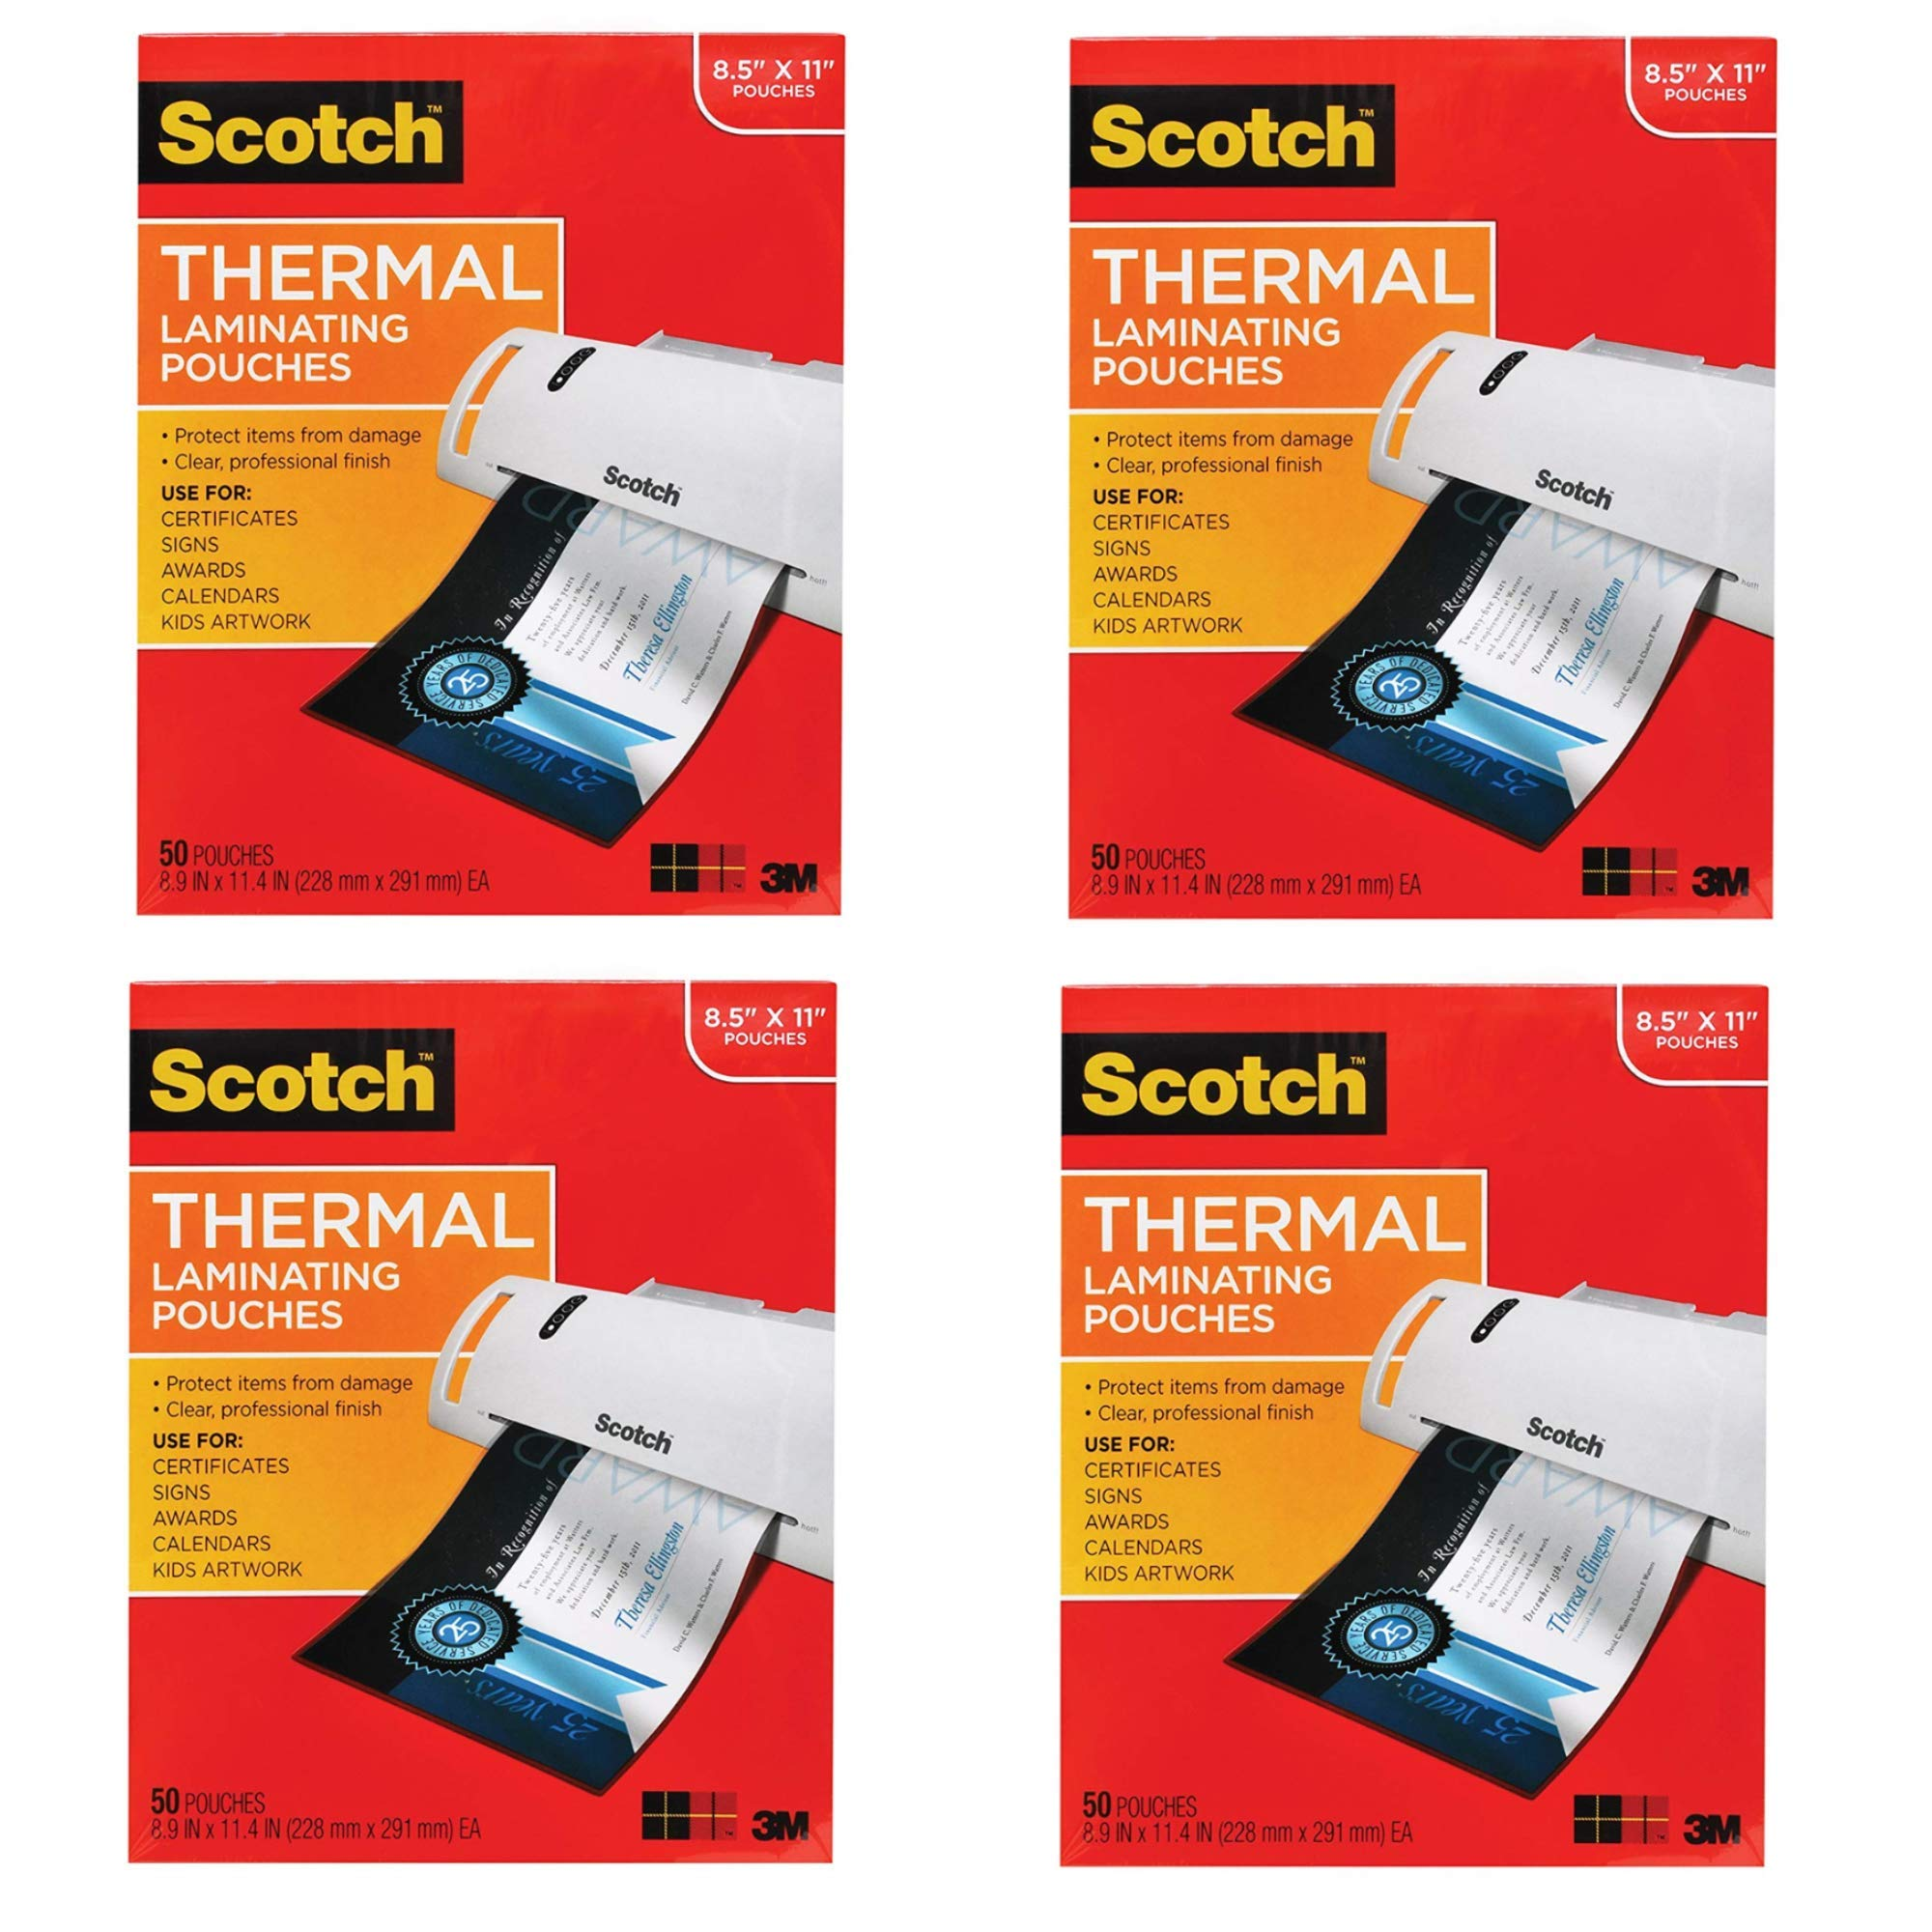 Scotch Thermal Laminating Pouches, 8.9 x 11.4-Inches, 3 mil Thick, 50-Pack (TP3854-50),Clear (4) by Scotch Brand